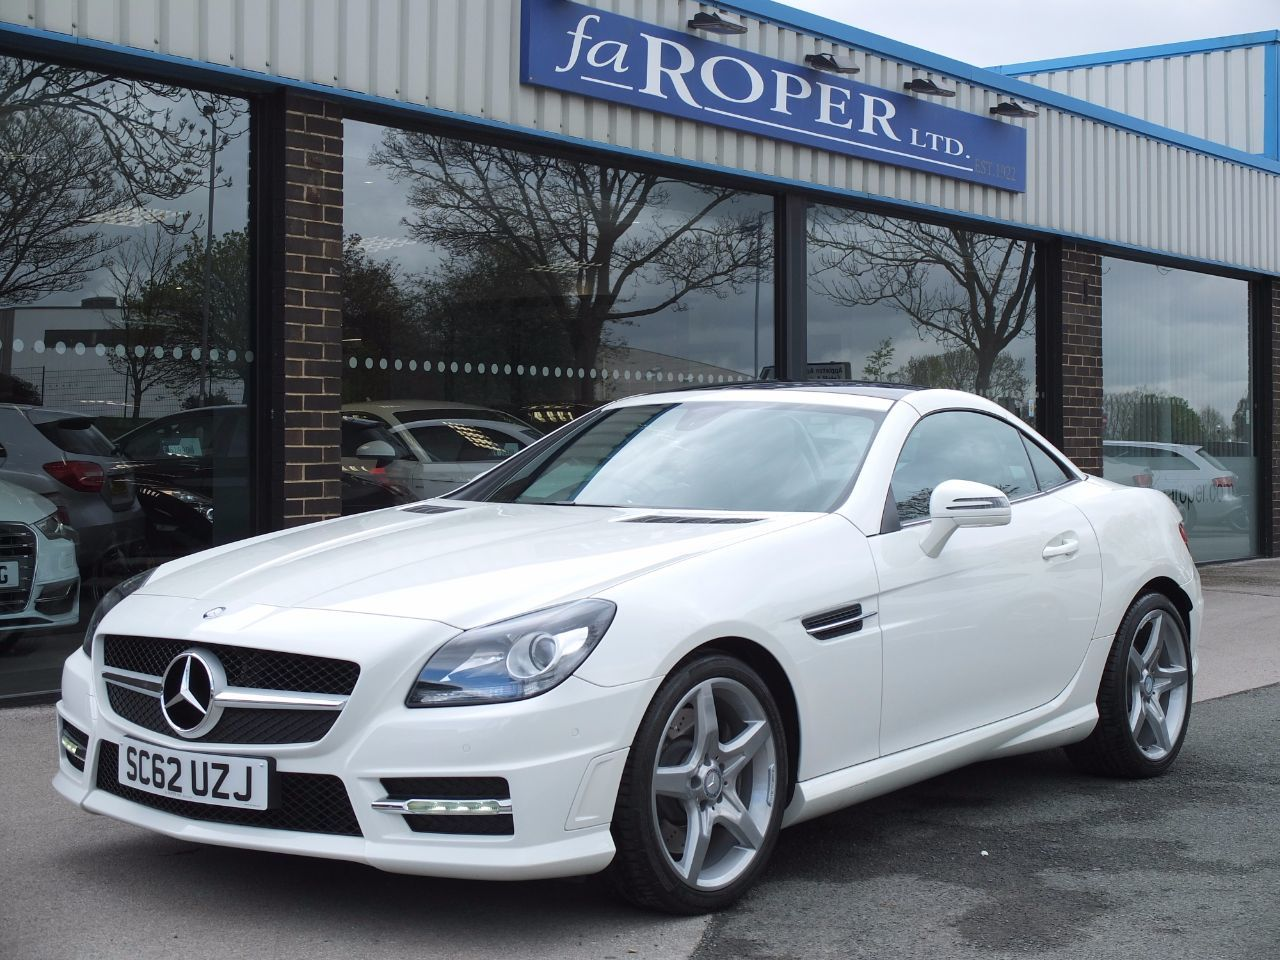 Mercedes-Benz SLK 2.1 SLK 250 CDI BlueEFFICIENCY AMG Sport Auto Convertible Diesel Calcite White